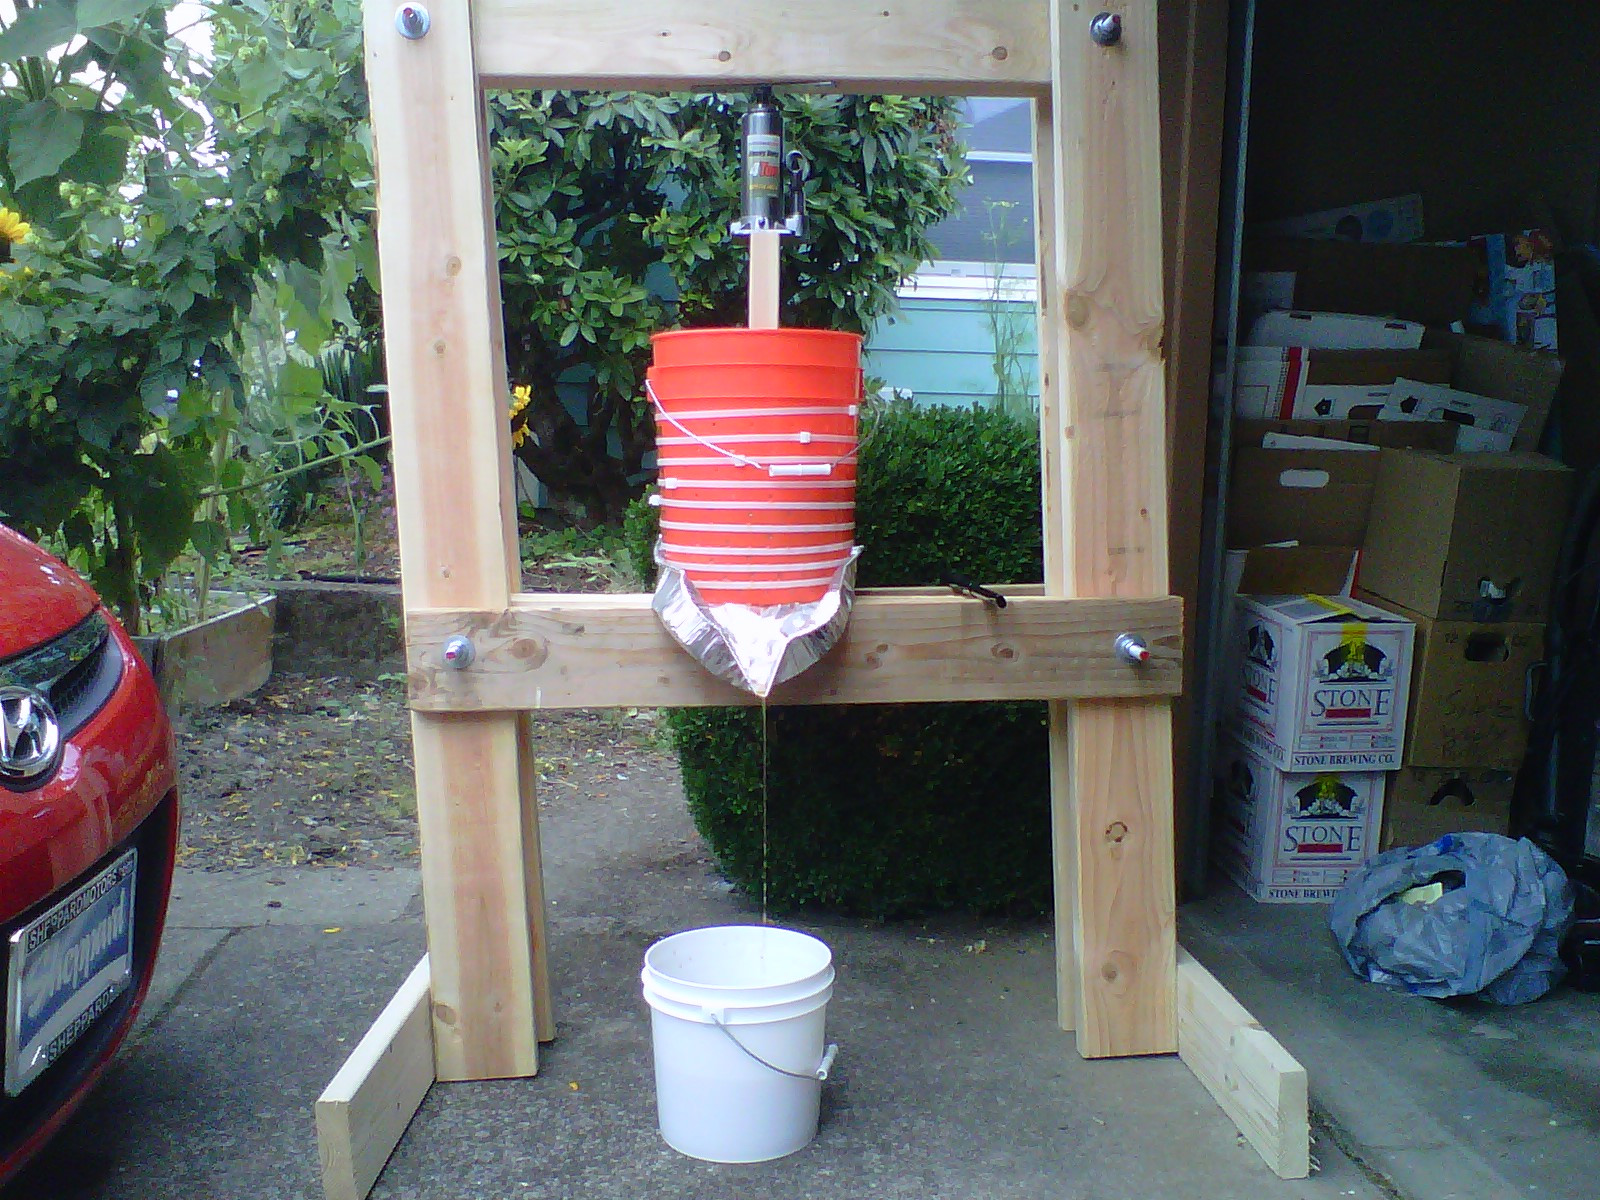 Best ideas about DIY Cider Press . Save or Pin Build An Apple Cider Press Basket For Under $20 Now.